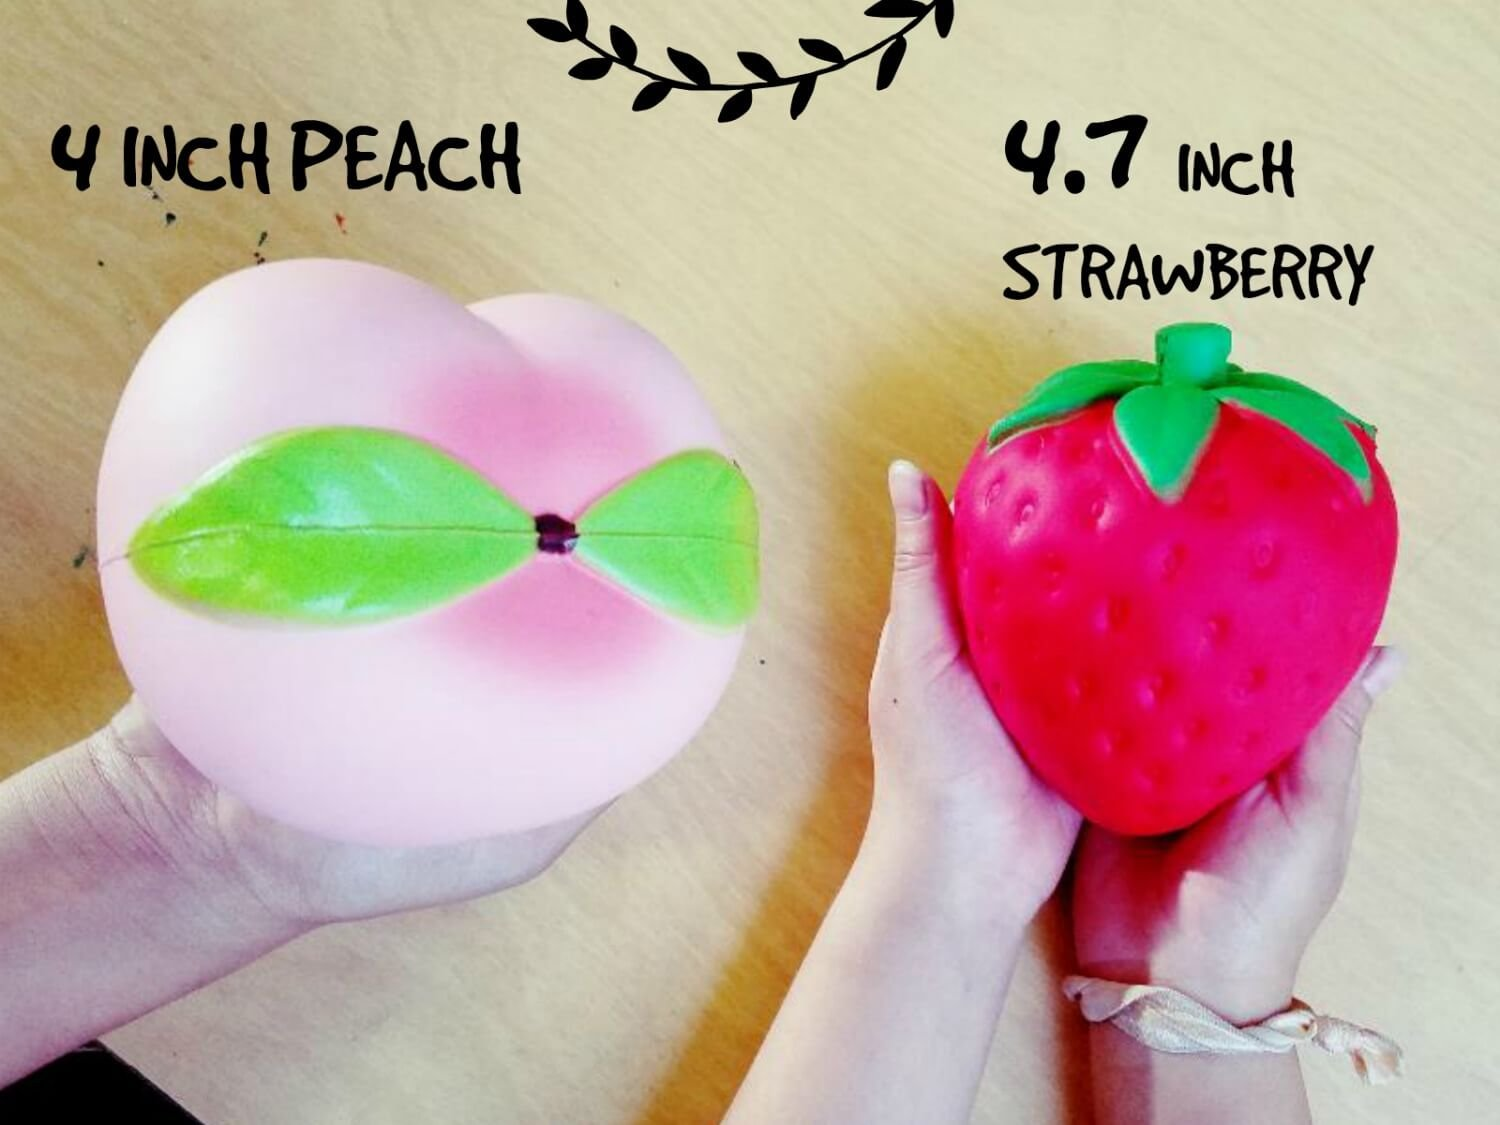 Squishies Slow Rising Jumbo Fruit - Prime 4 Pack Kawaii Squishy Toys Package Strawberry Peach Banana Apple Giant Scented Fruit Pack Cute Squishys Super Soft Stress Relief GIFT For Kids & Adults by Buylet Squishies (Image #5)